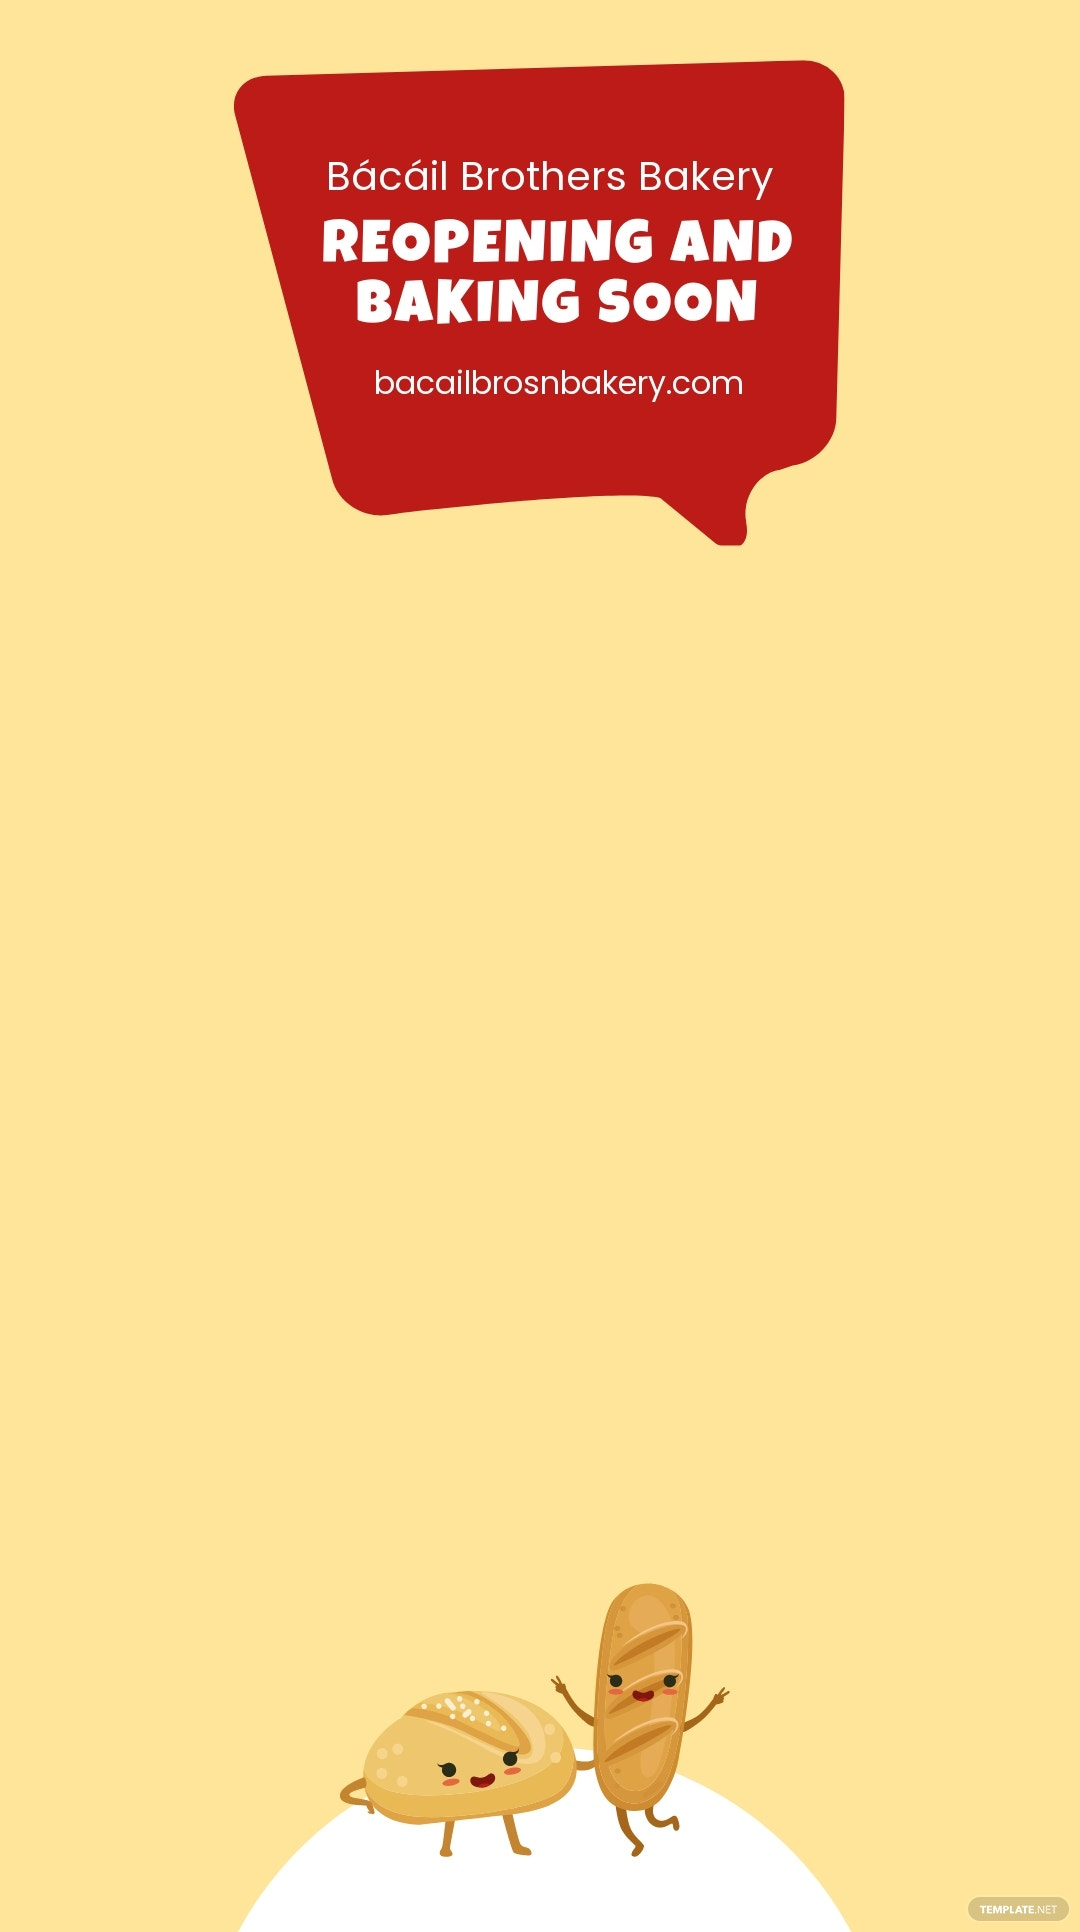 Free Bakery Reopening Snapchat Geofilter Template.jpe